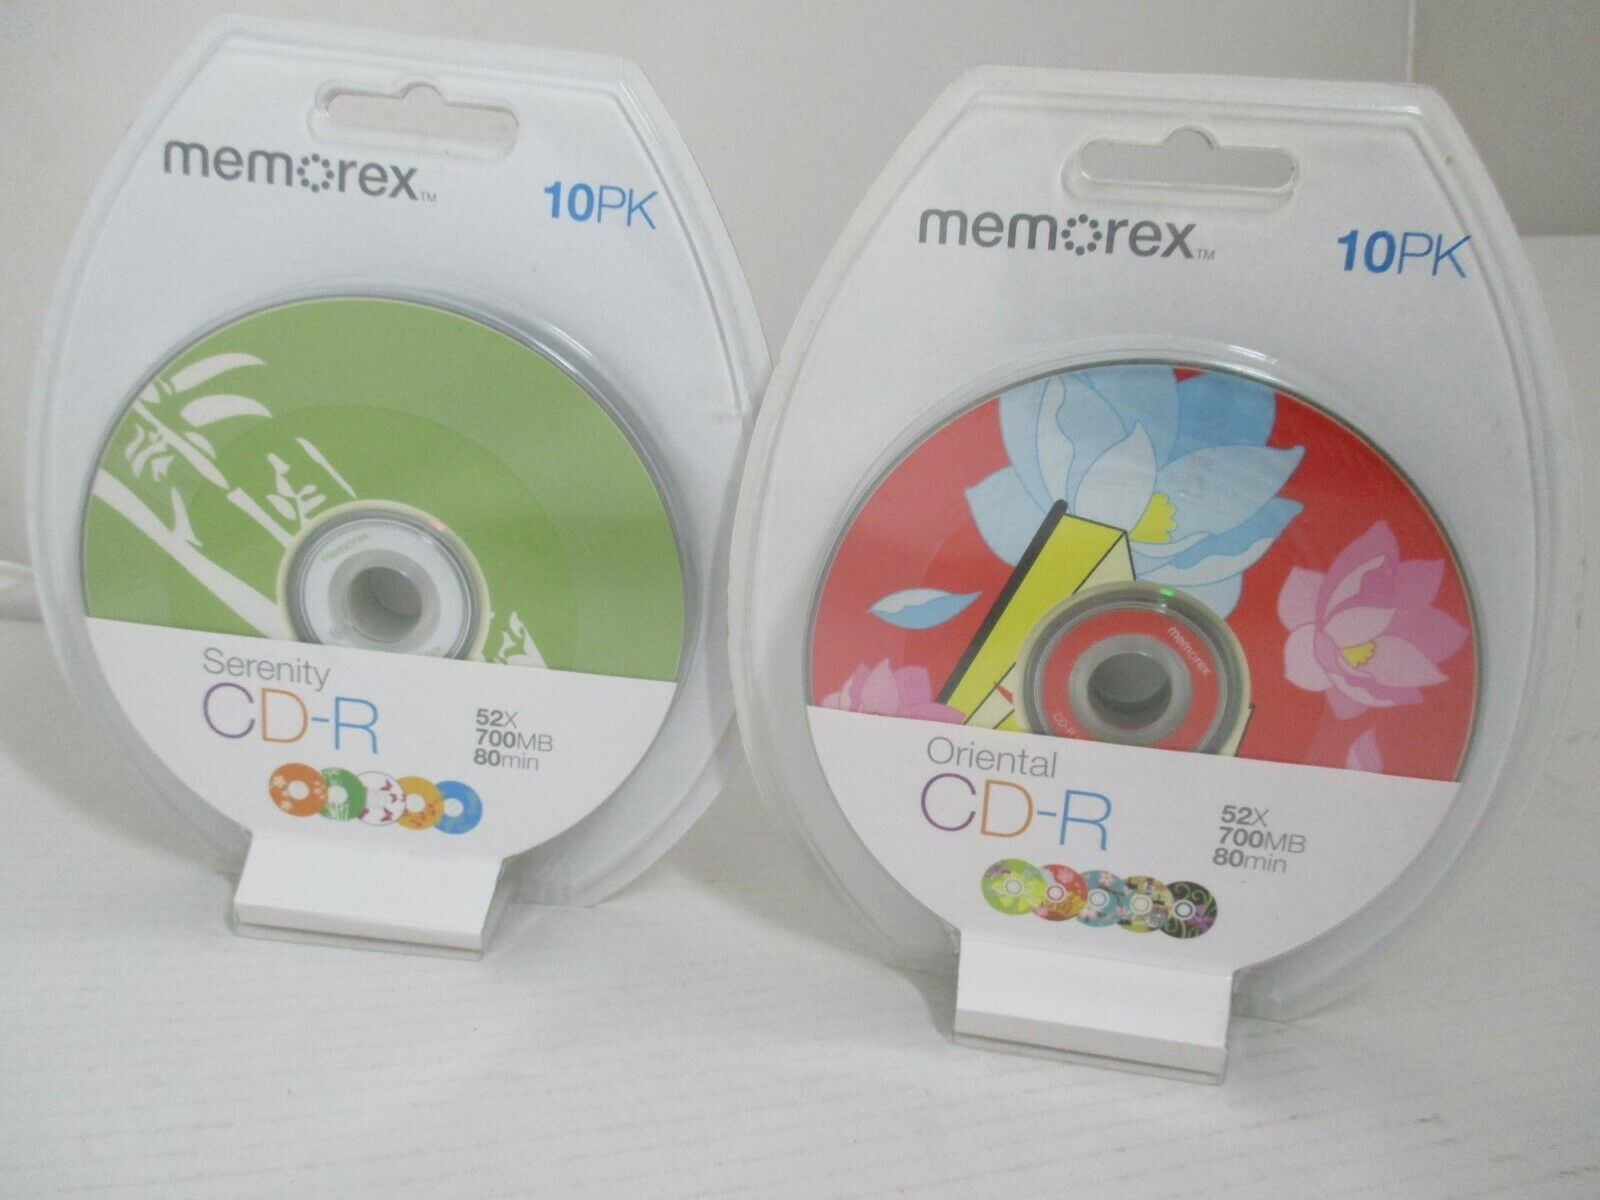 2 x 10 Pack Memorex CD-R 52X 700MB 80 Minutes Recordable CD - Oriental Serenity - $14.99